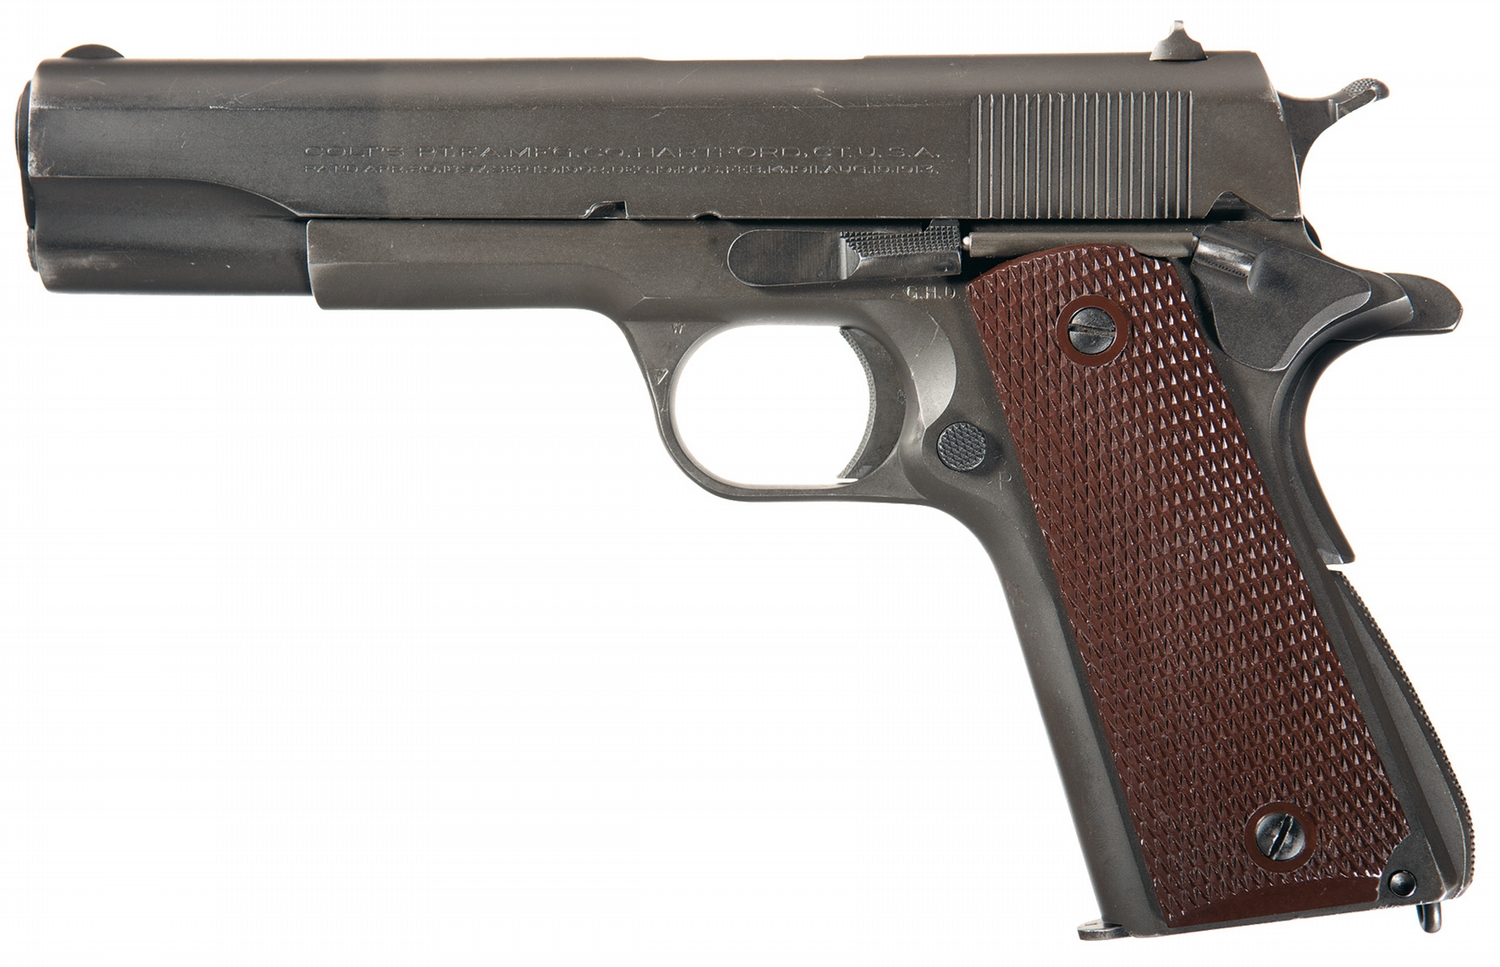 Colt Government Model 1911A1 Military/Commercial Pistol